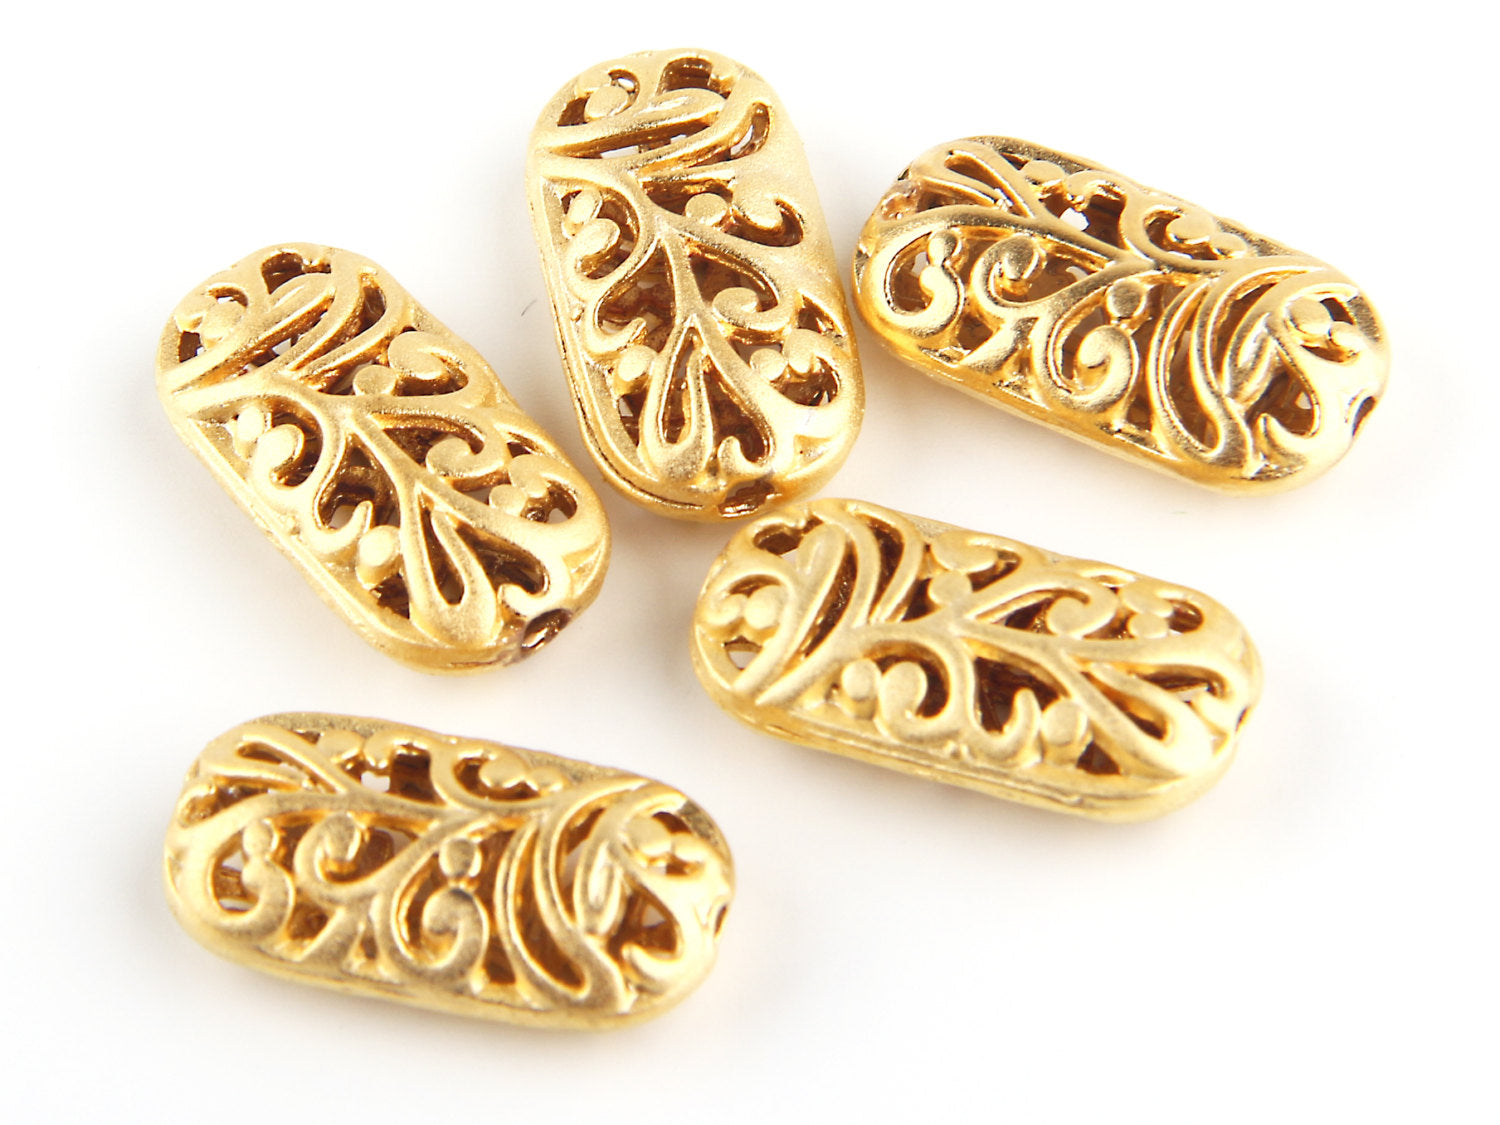 SALE, Matte Gold Hollow Out Floral Rectangular Bead Spacer, Rectangular Bead Spacers, 5 pieces // GB-107